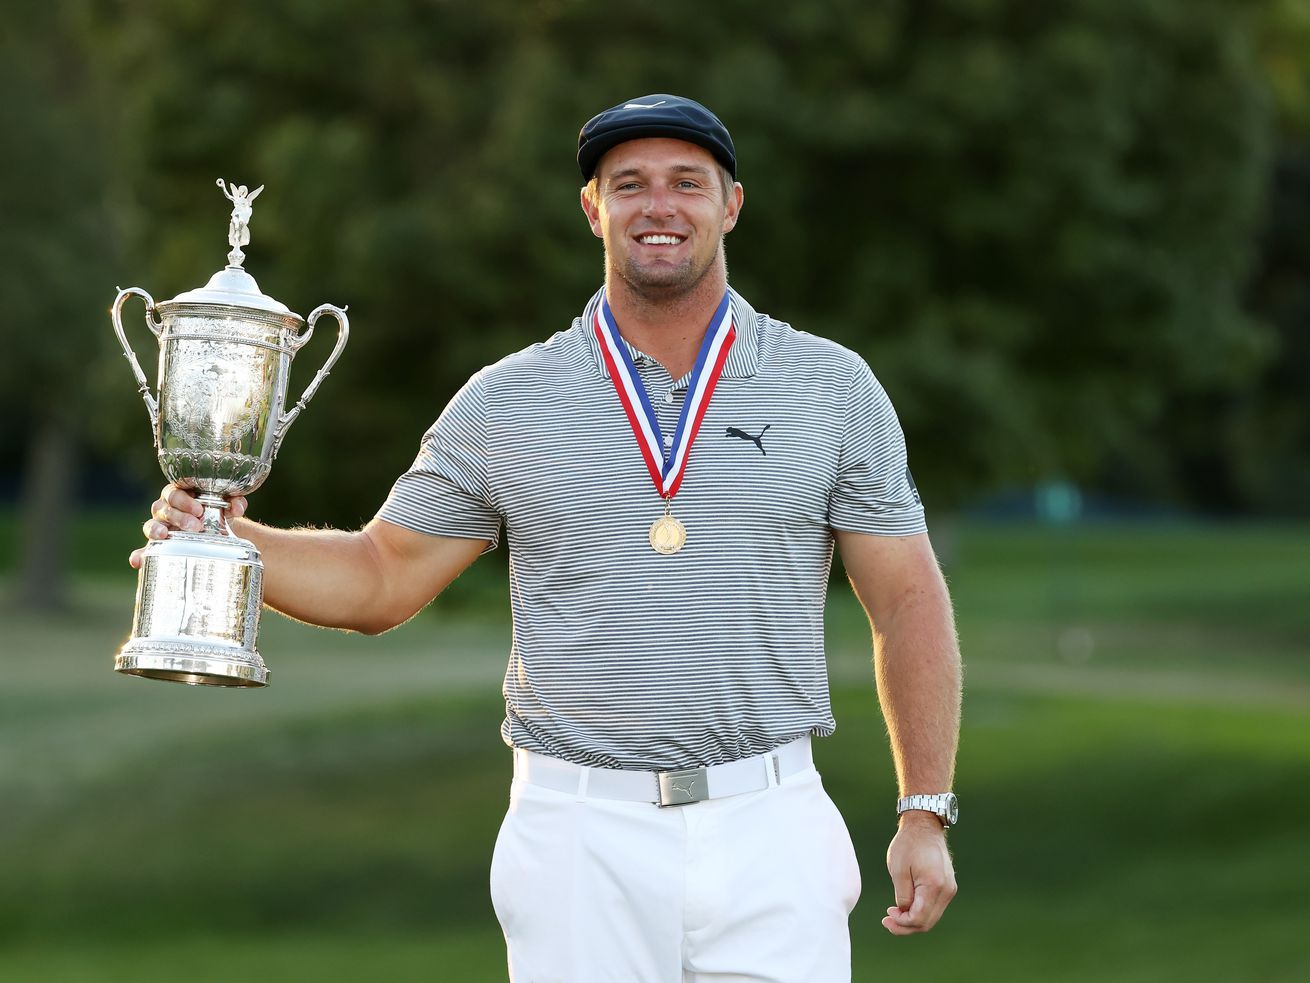 Bryson DeChambeau closes with 67, cruises to U.S. Open victory